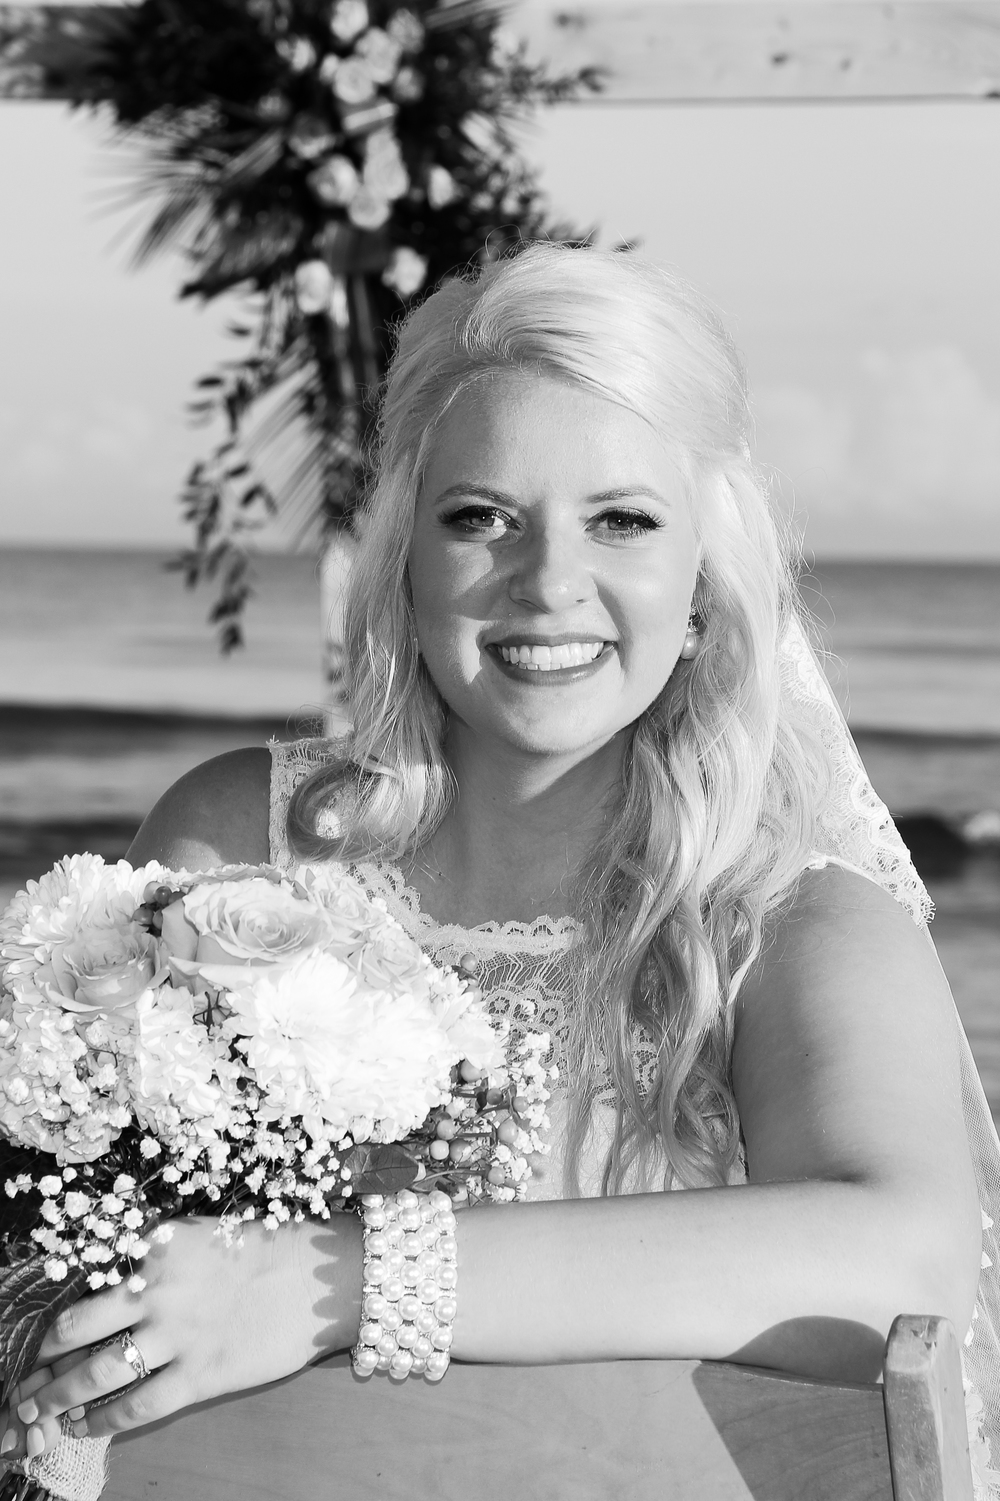 Hilton Head SC Beach bride black and white photography